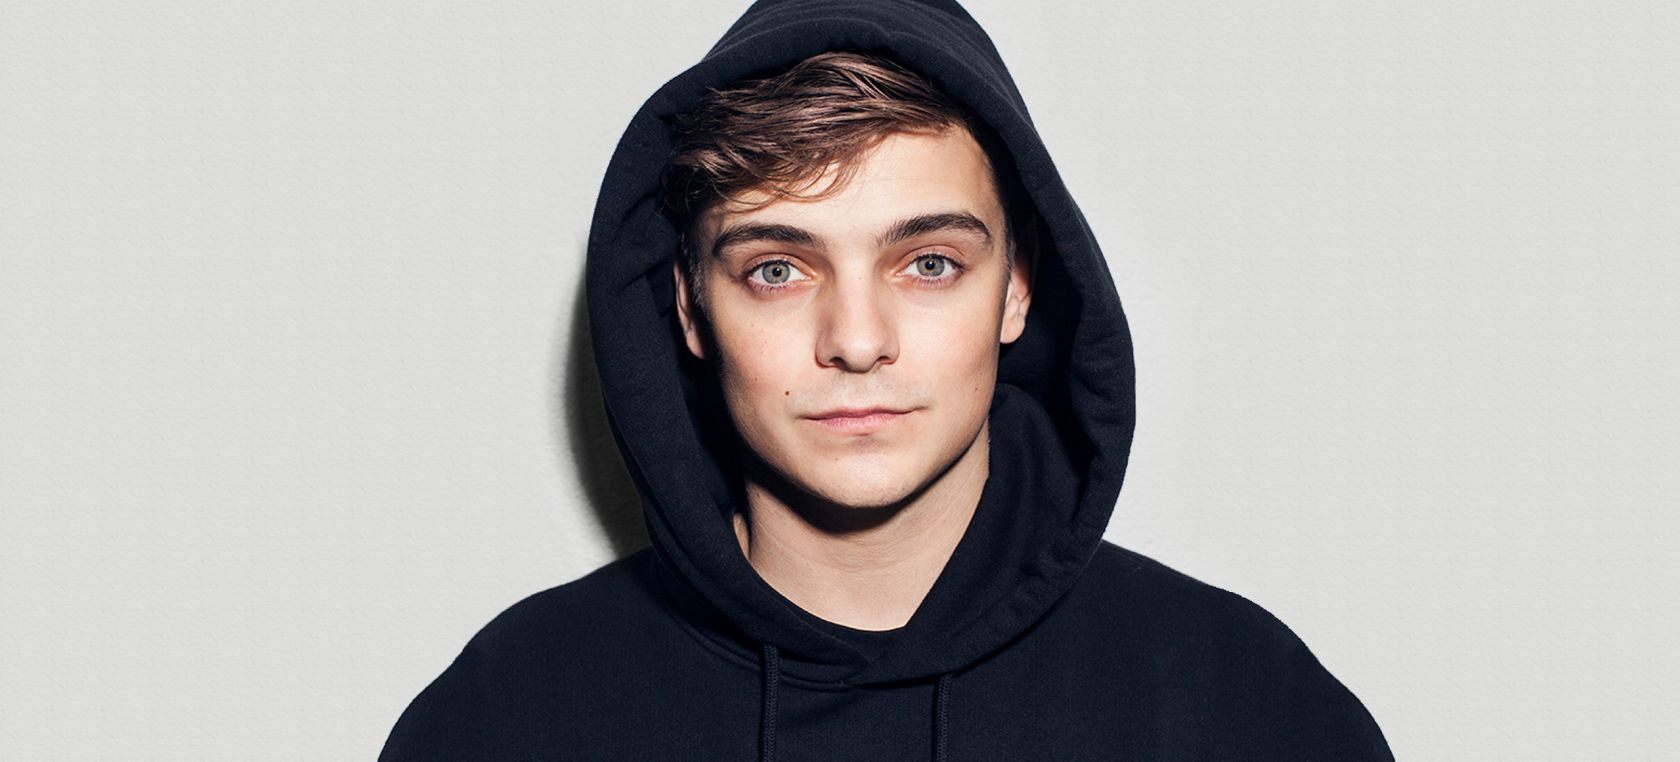 La disputa entre Martin Garrix vs. Spinnin' Records, ¡ya tiene un final!